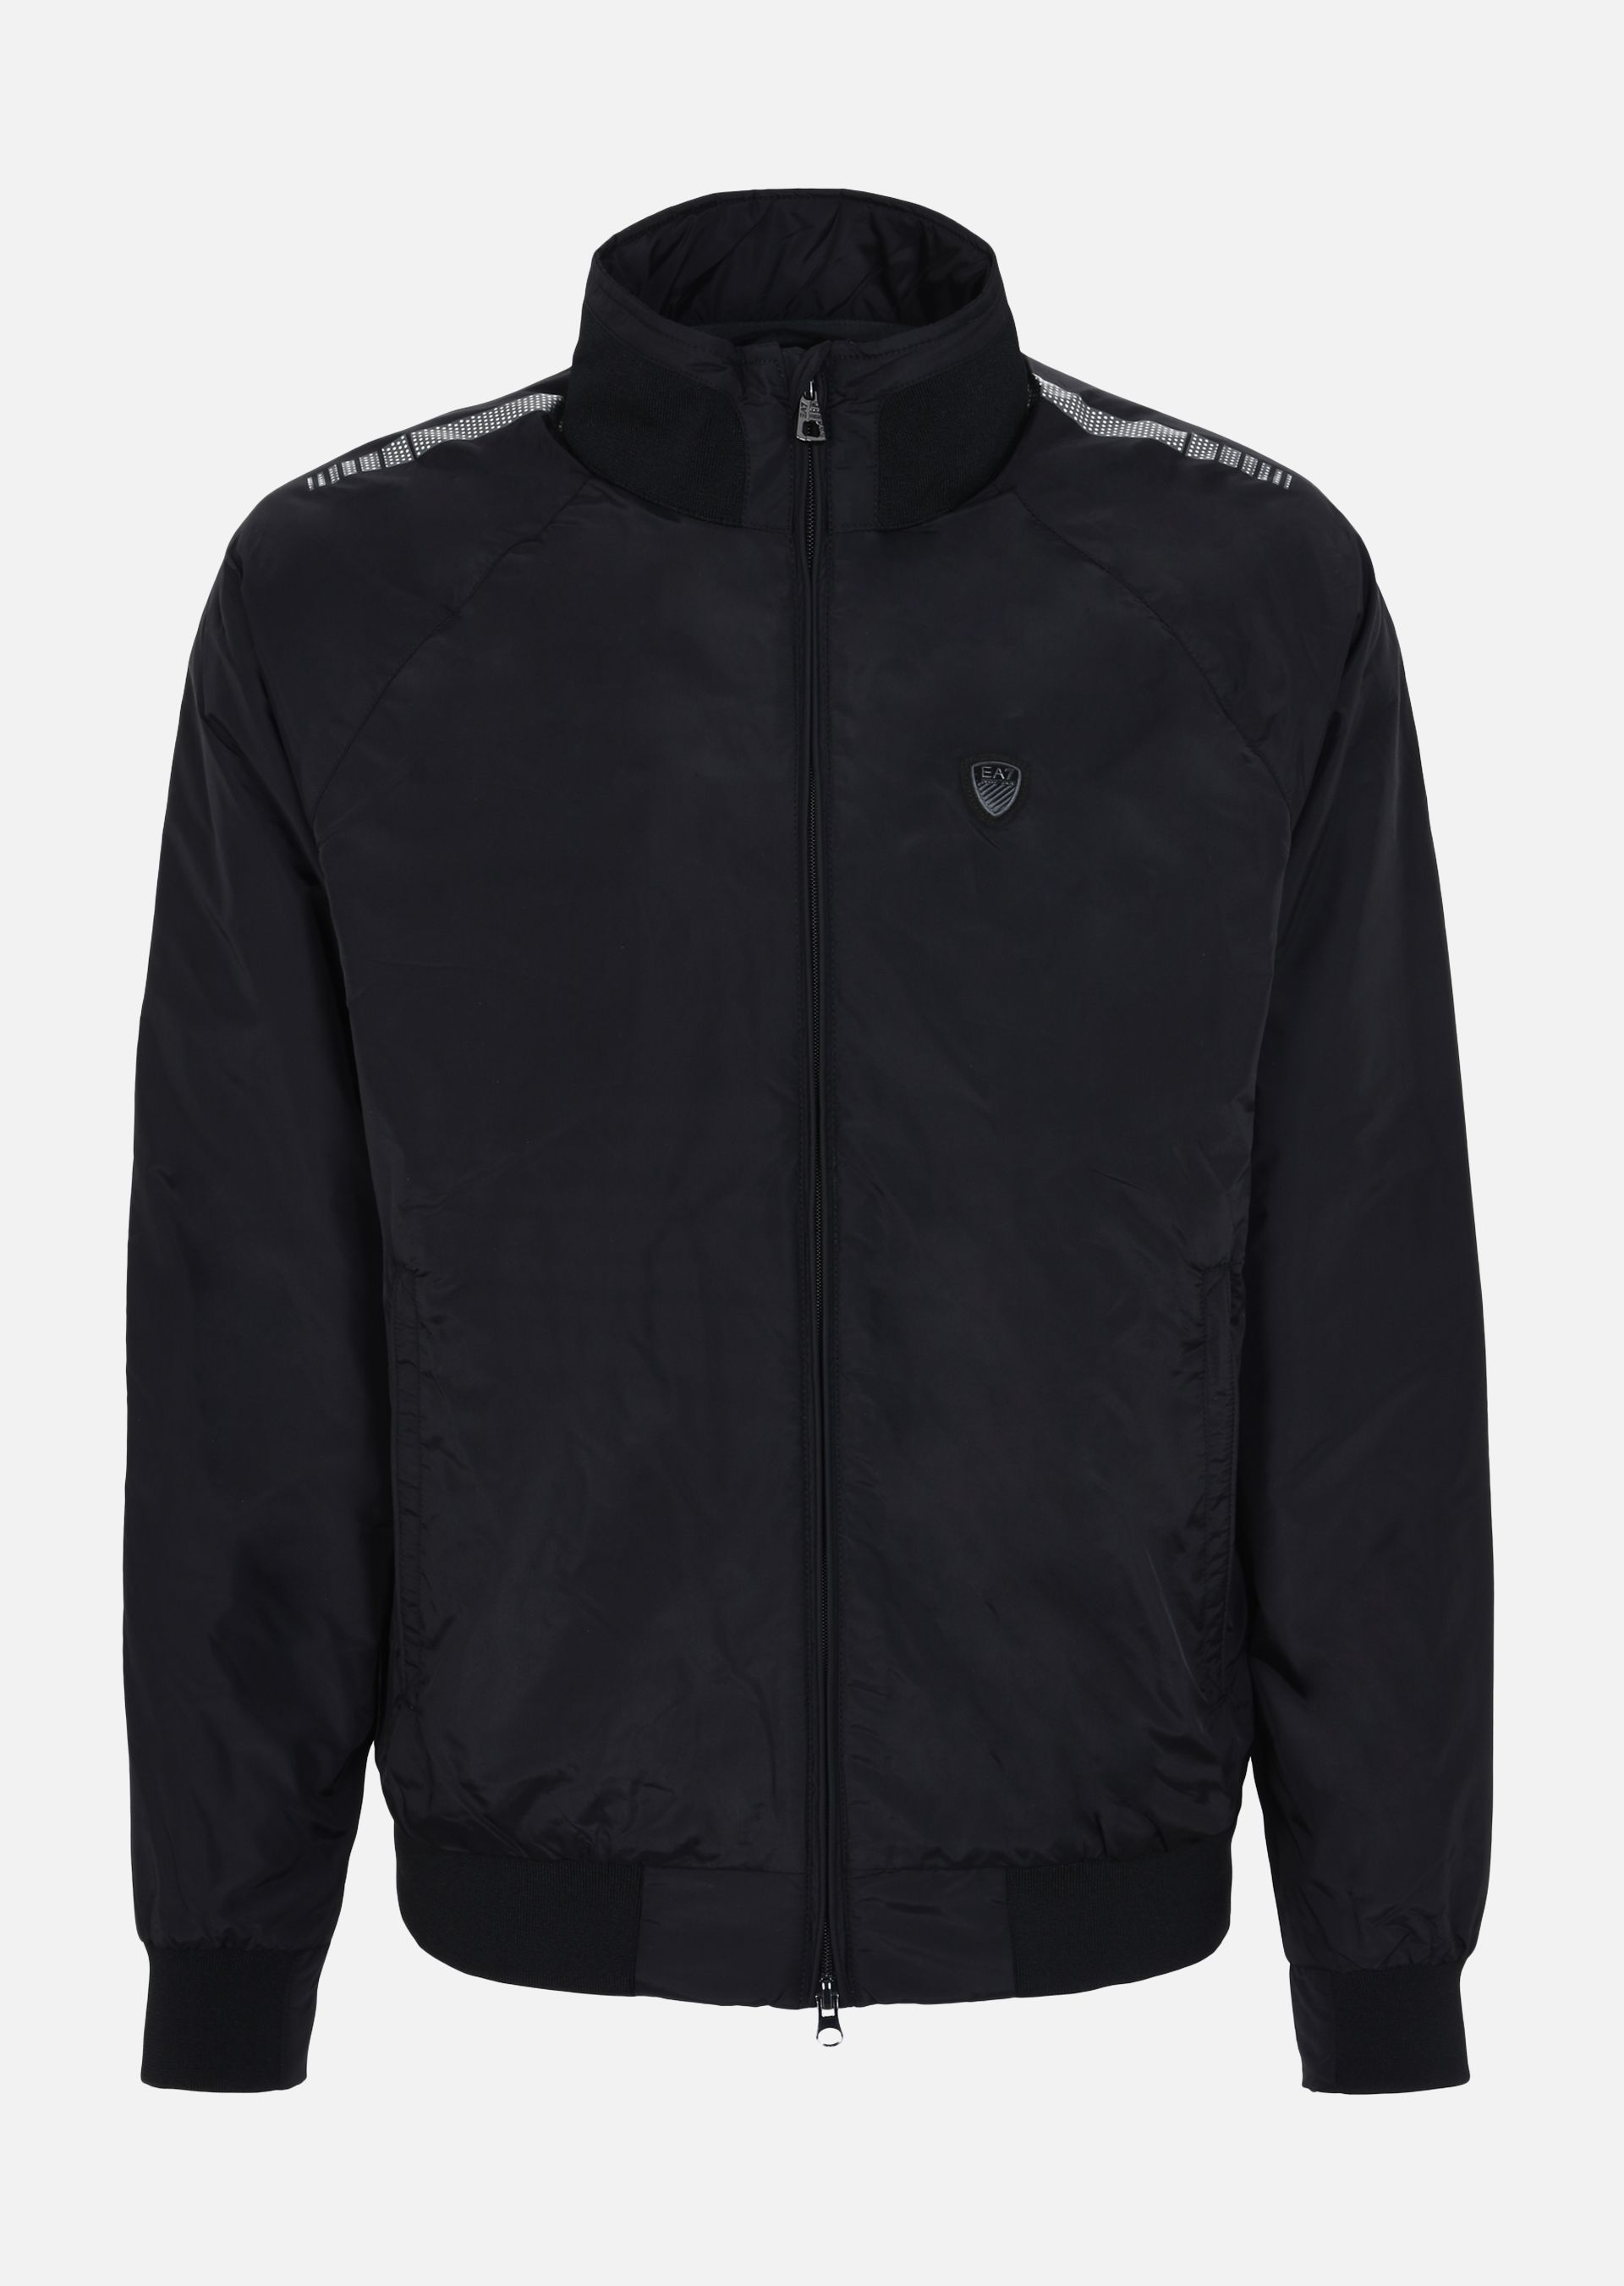 Men's black armani puffer jacket